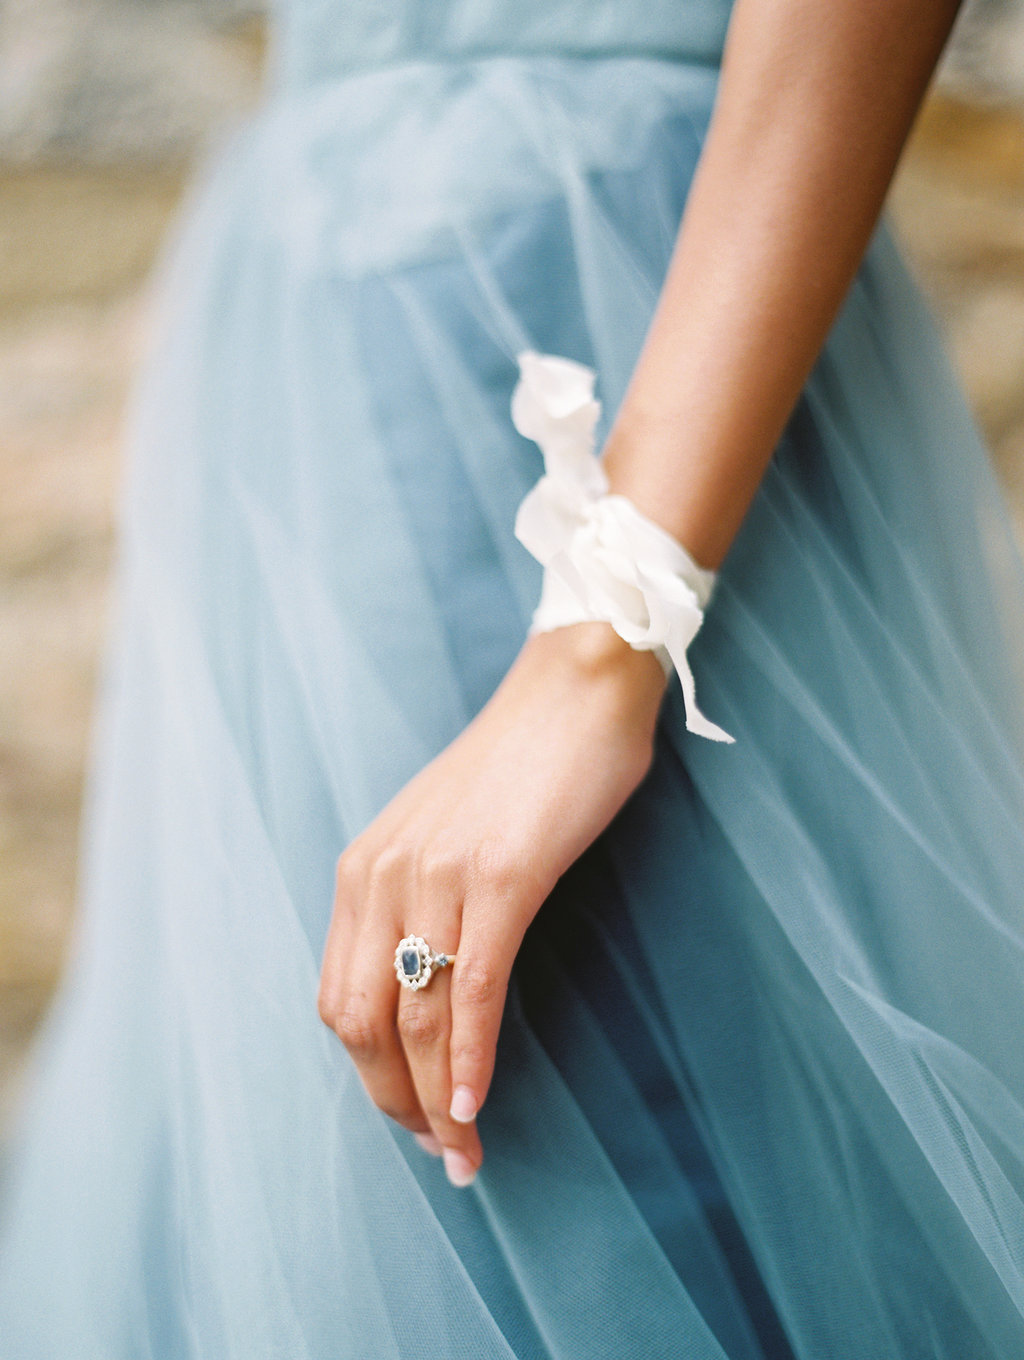 bridal ribbon accessories - photo by Charla Storey http://ruffledblog.com/architectural-san-antonio-mission-wedding-inspiration